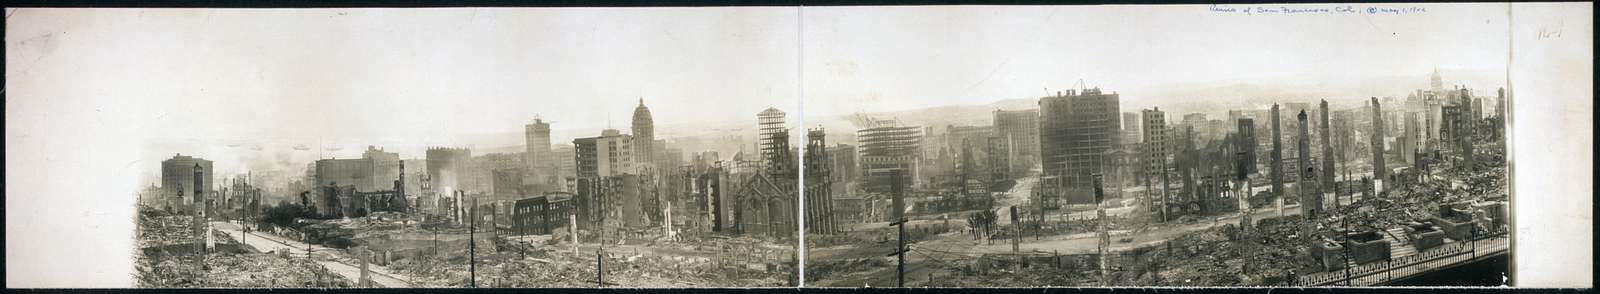 Ruins of San Francisco, Cal.